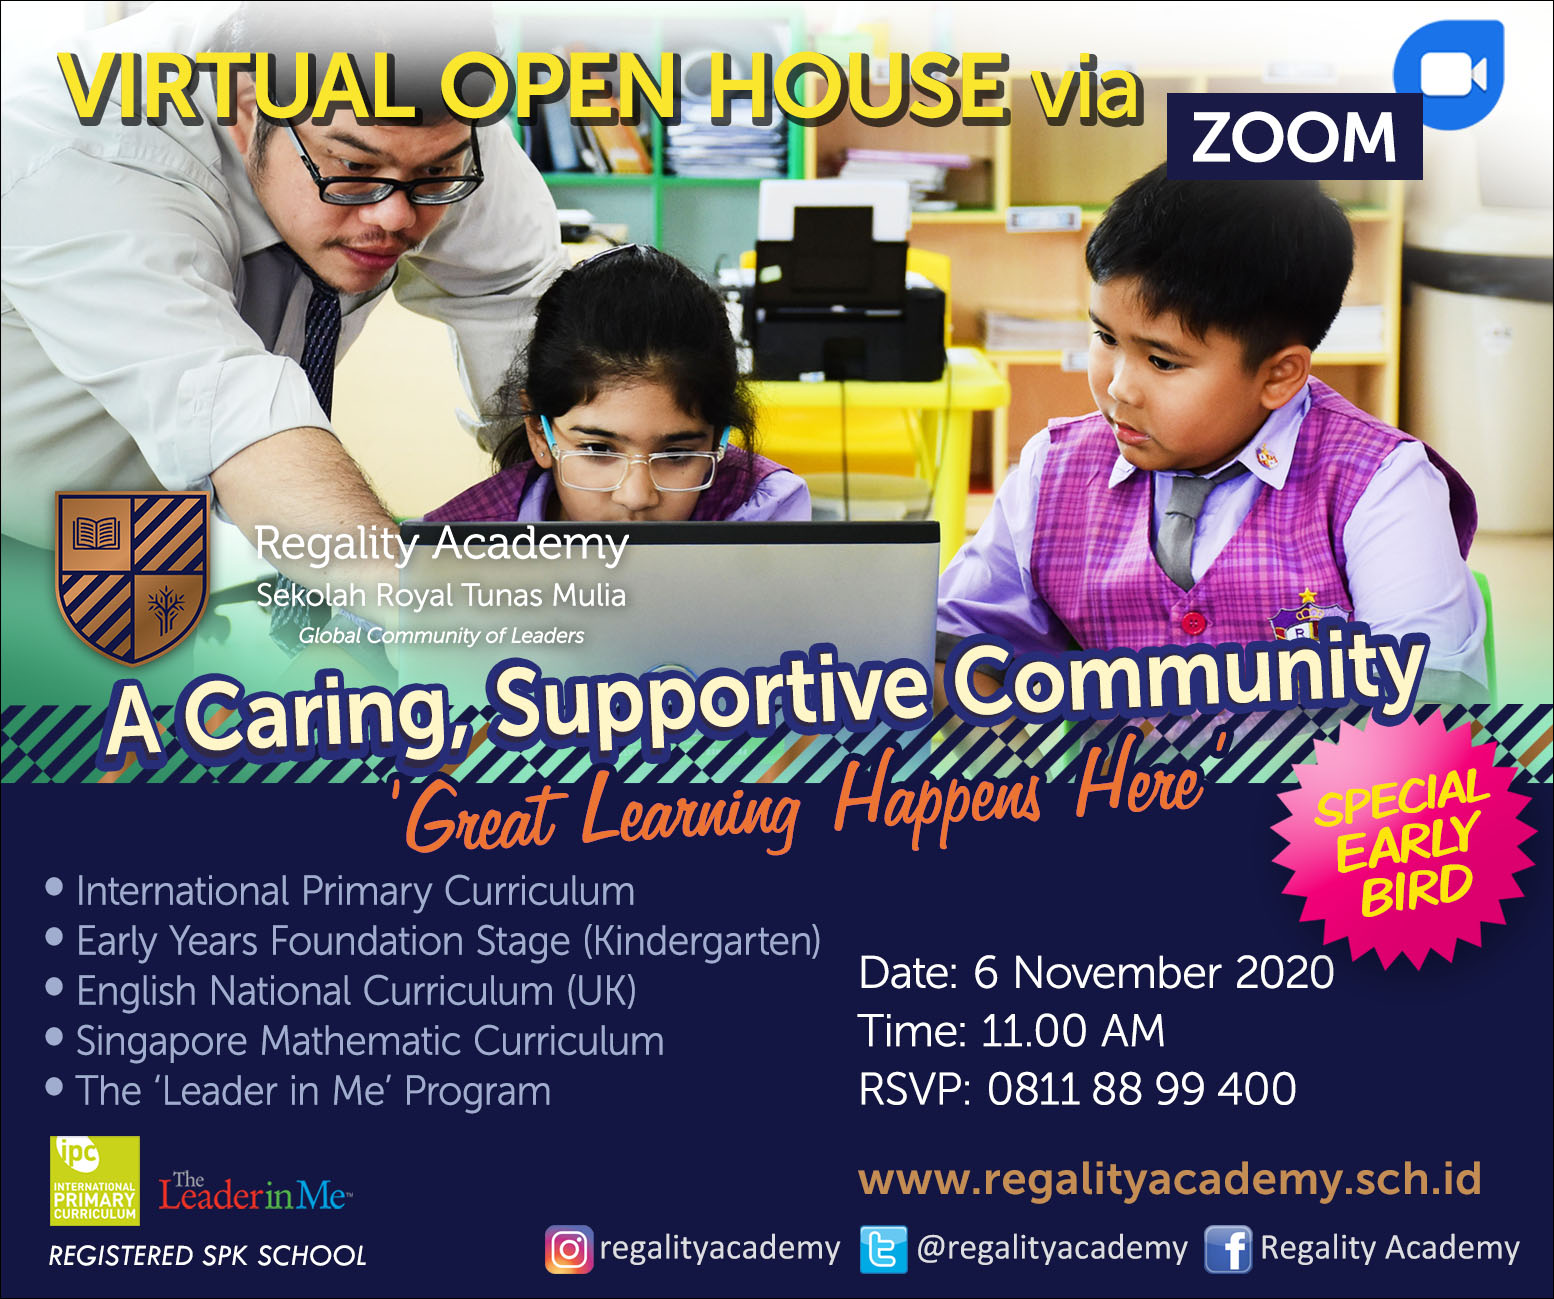 @OPEN HOUSE [Flyer] alt b Oct'20 copy 4.